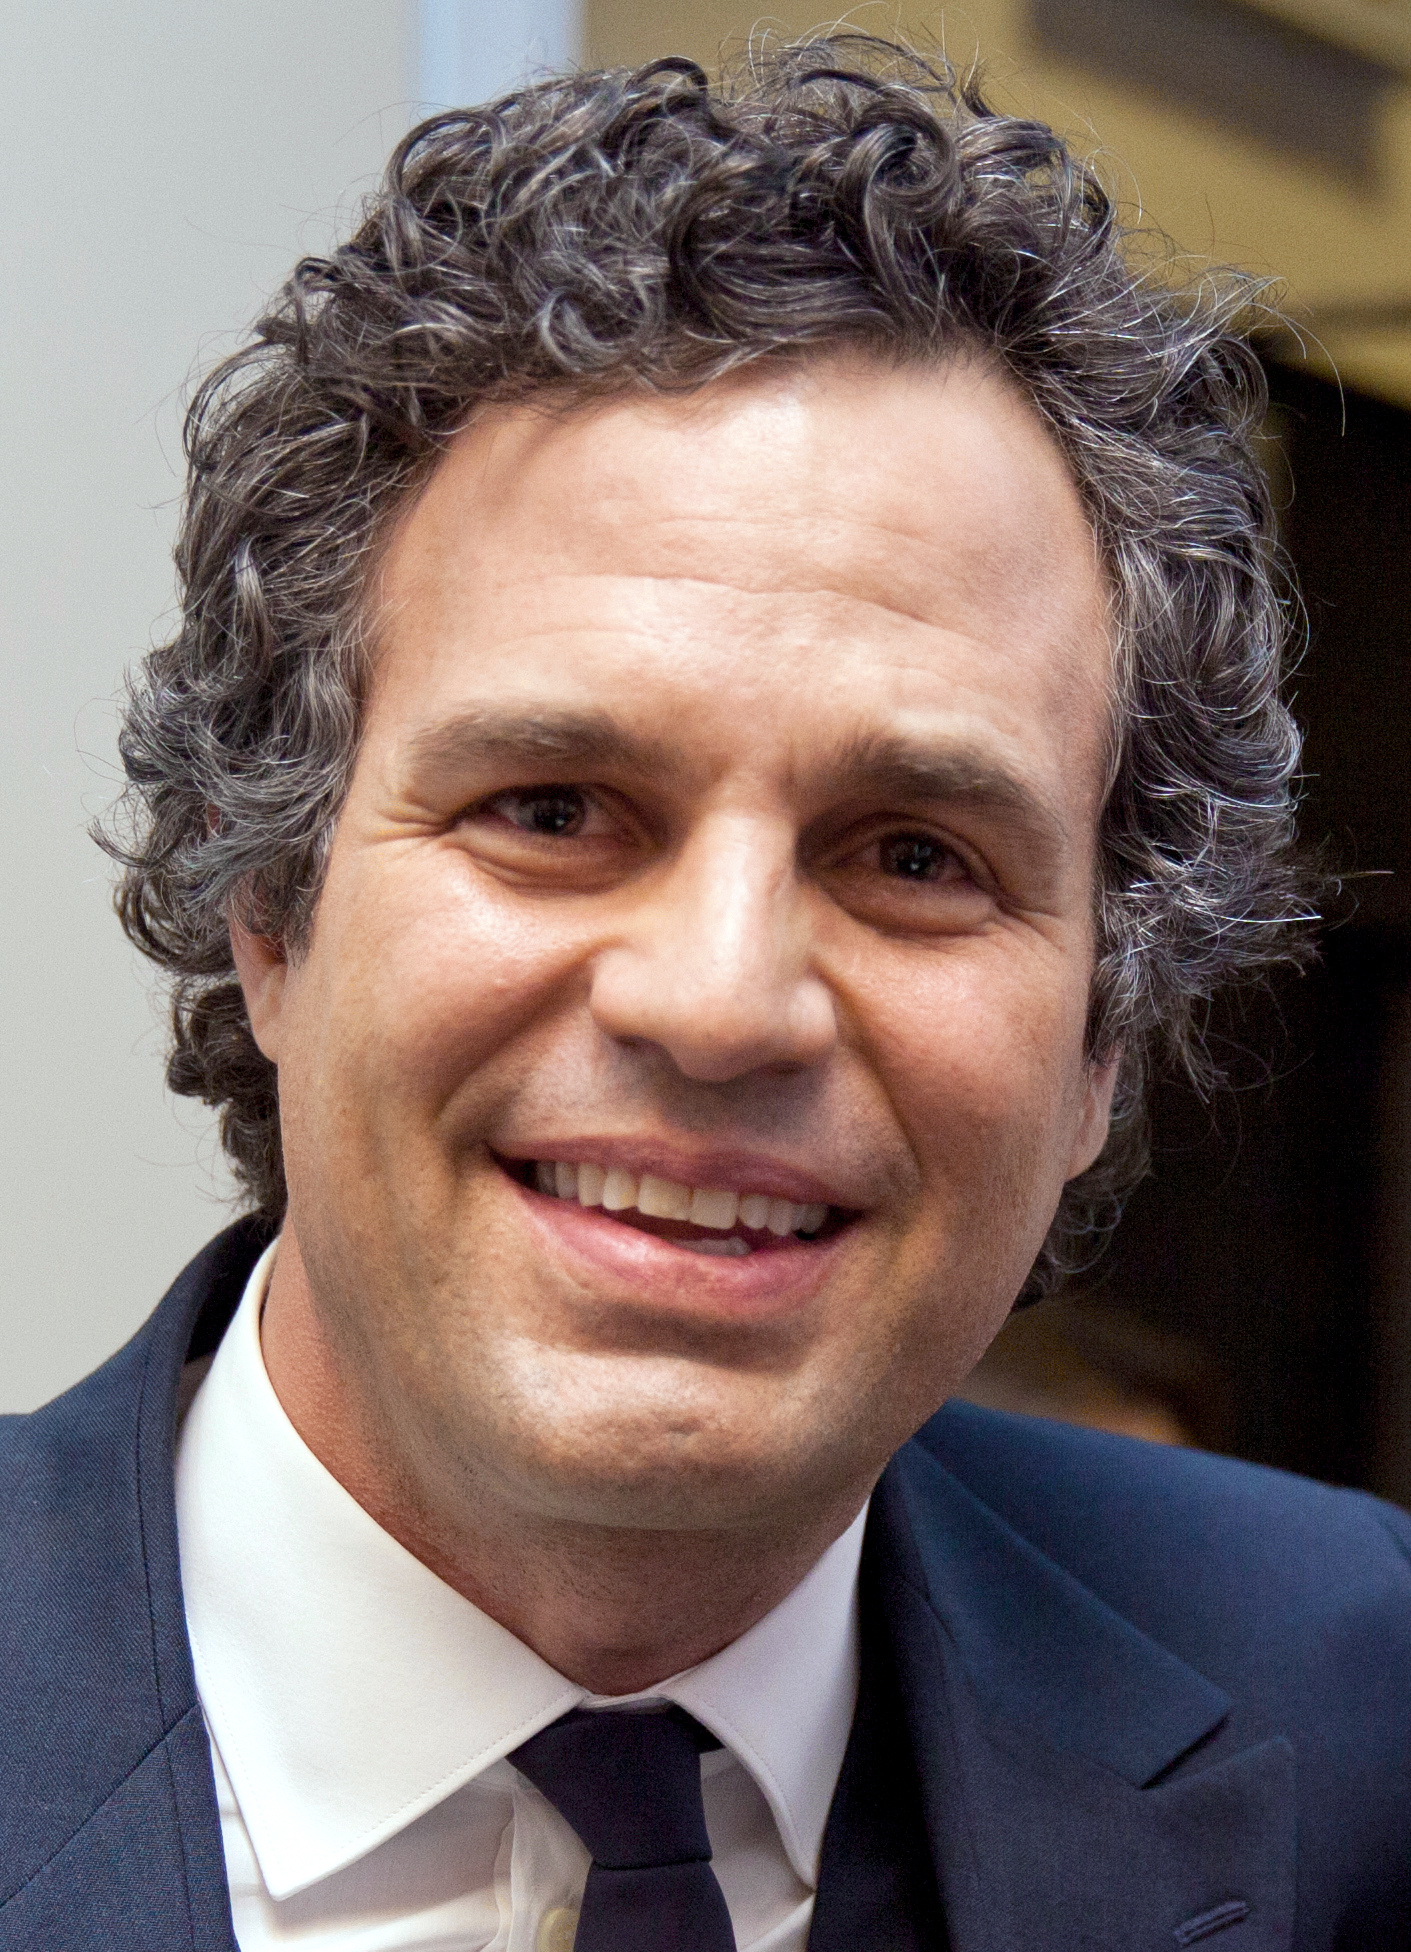 Mark Ruffalo: biography and filmography of the American actor 74